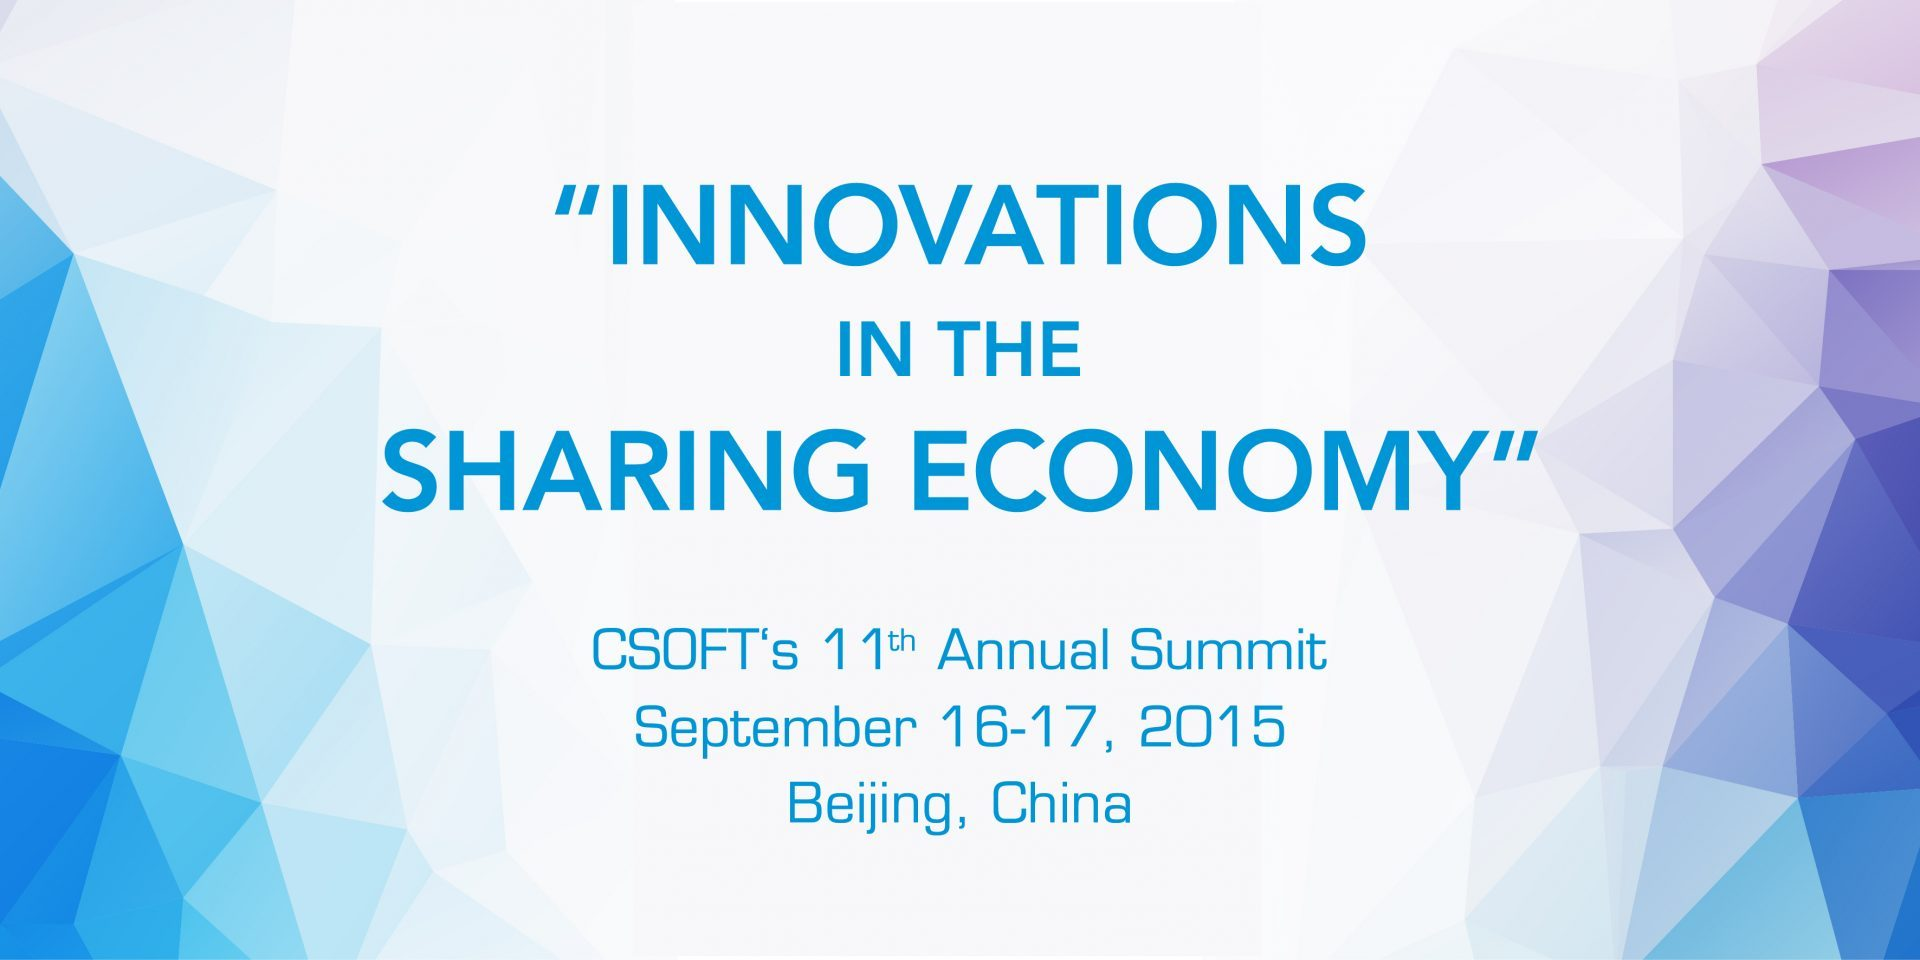 Innovation in the Sharing Economy